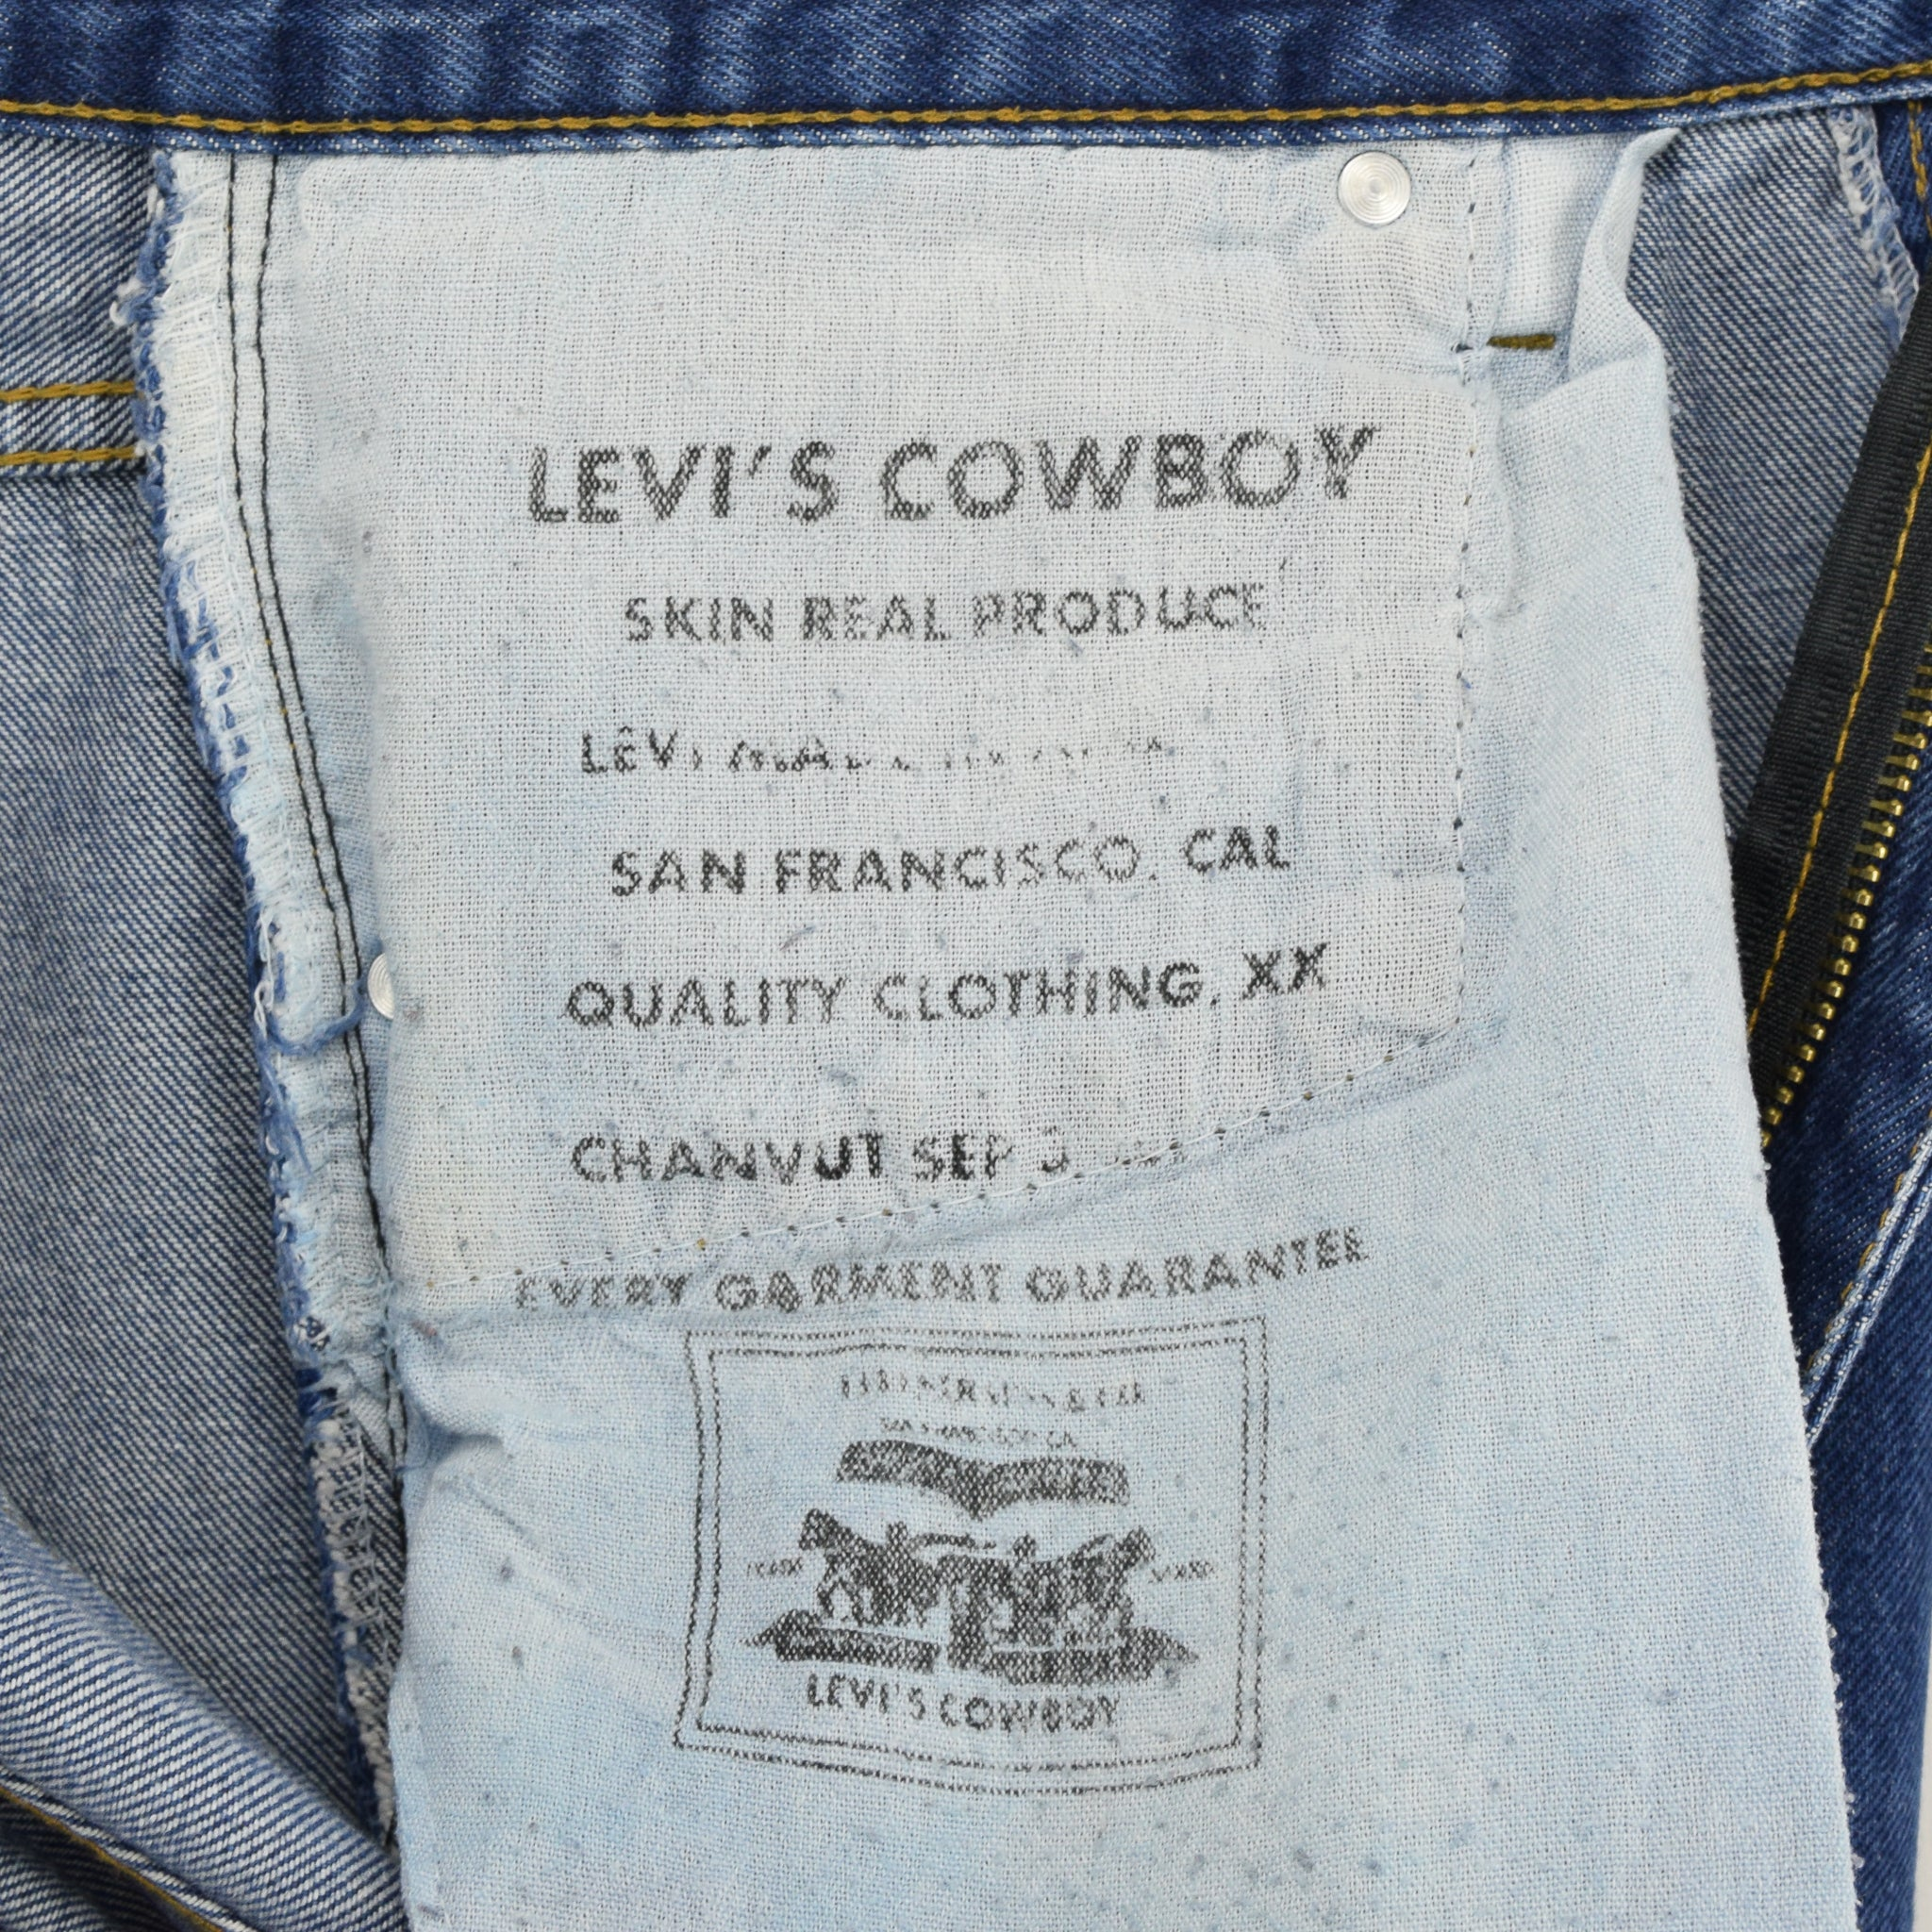 Vintage Levi Cowboy Red Tab Big E Stonewash Blue Denim Jeans Pant 34 W 26 L label